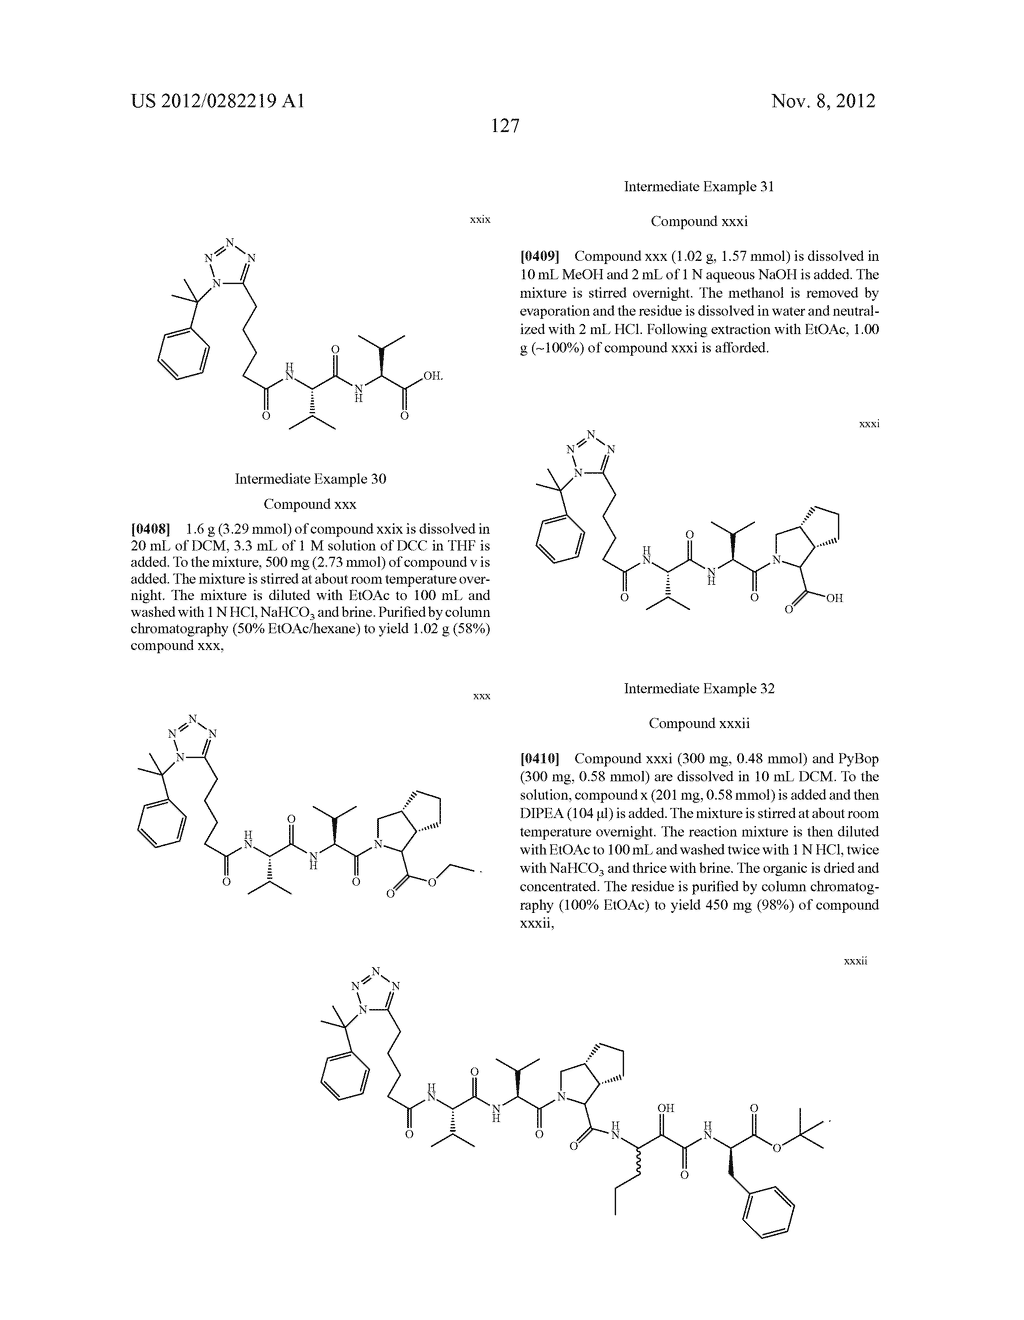 PEPTIDOMIMETIC PROTEASE INHIBITORS - diagram, schematic, and image 142